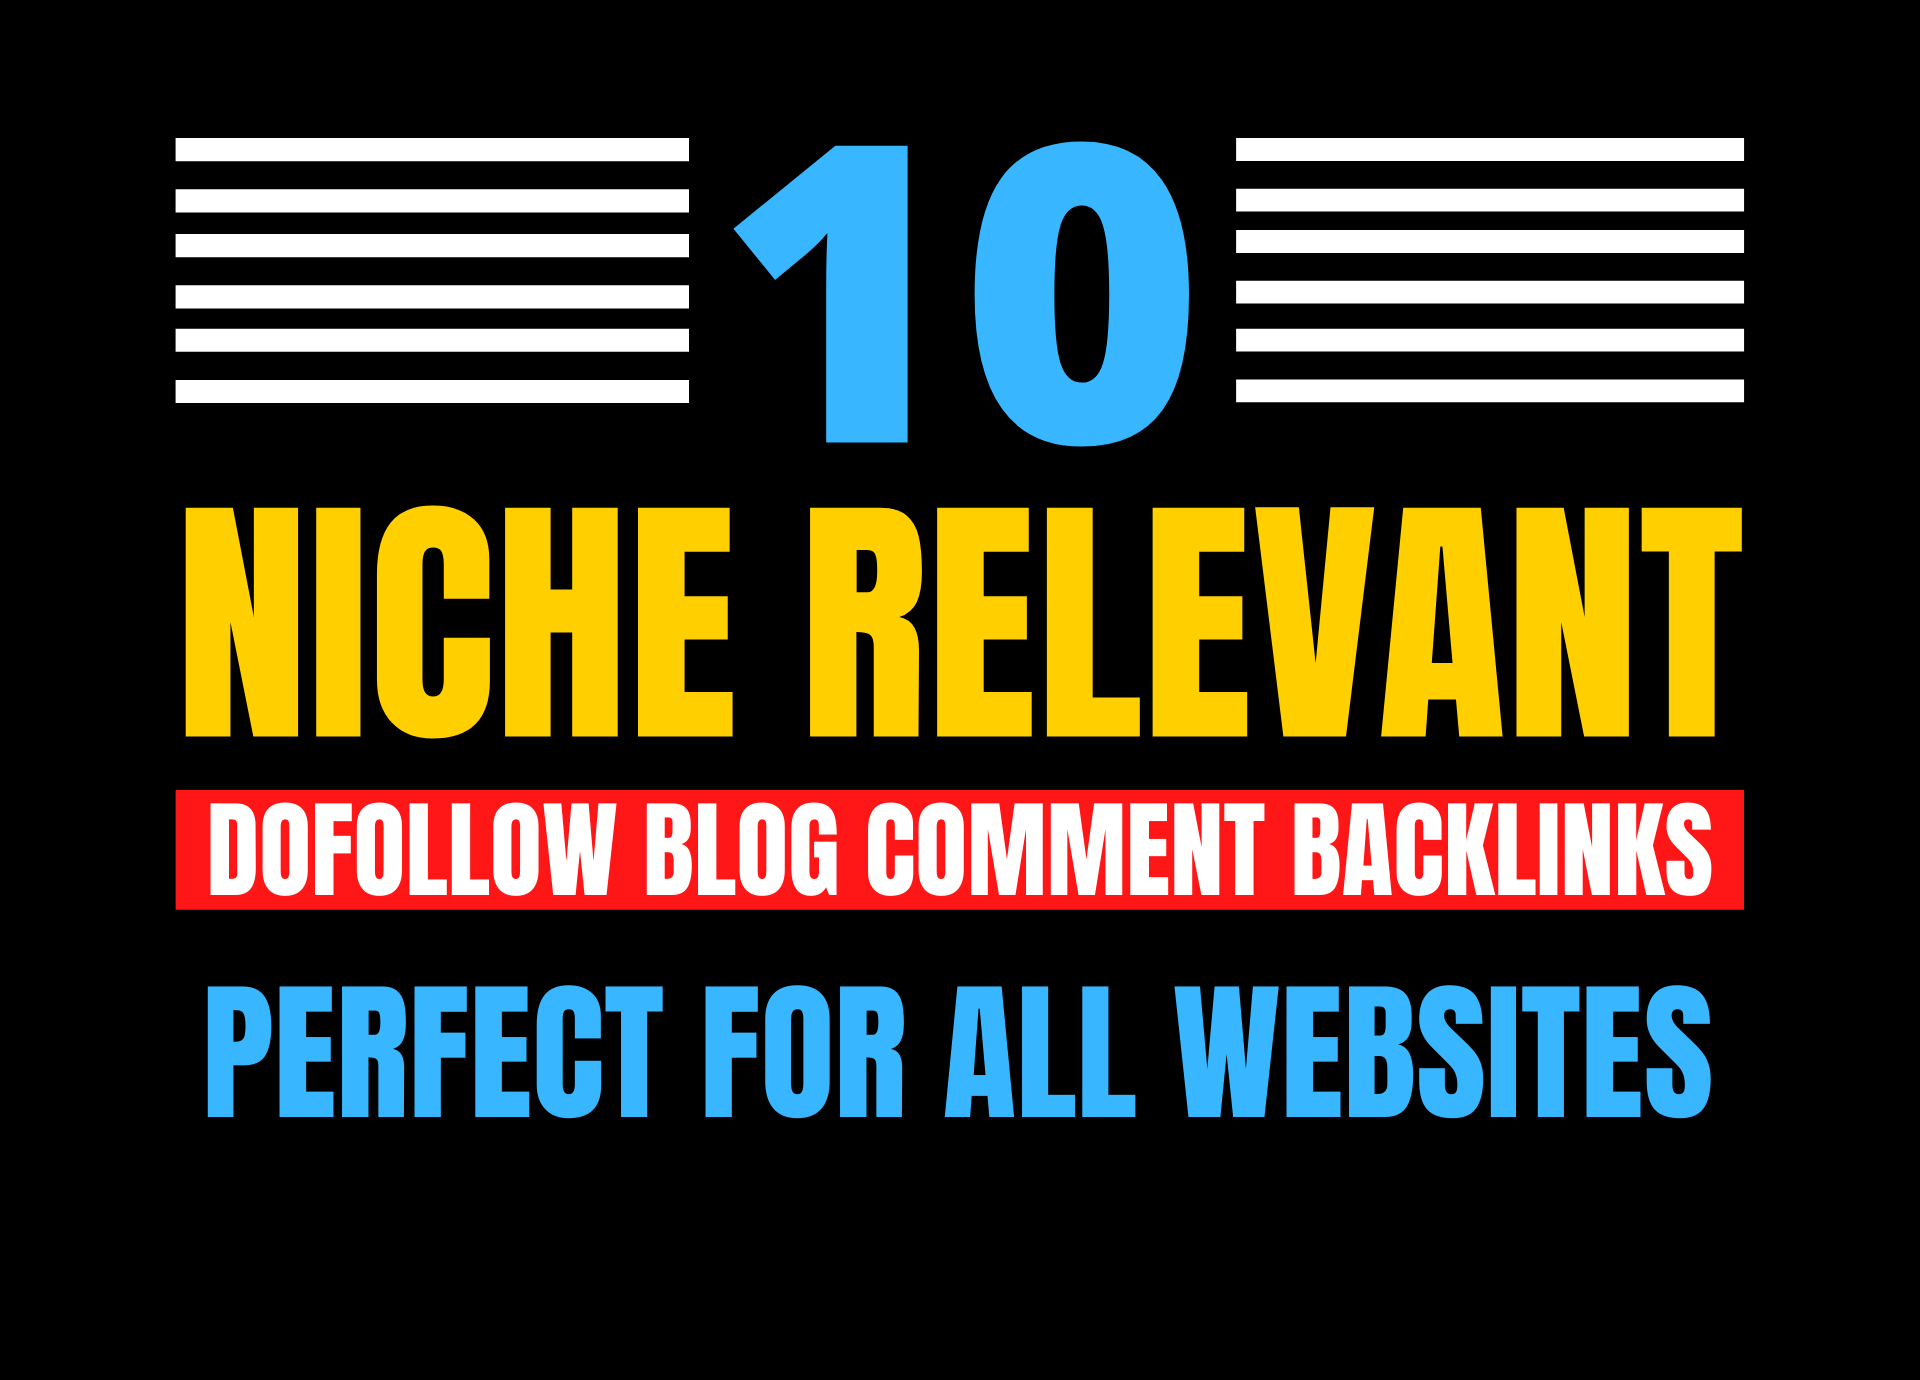 i will provide 05 niche relevant dofollow blog comment backlinks